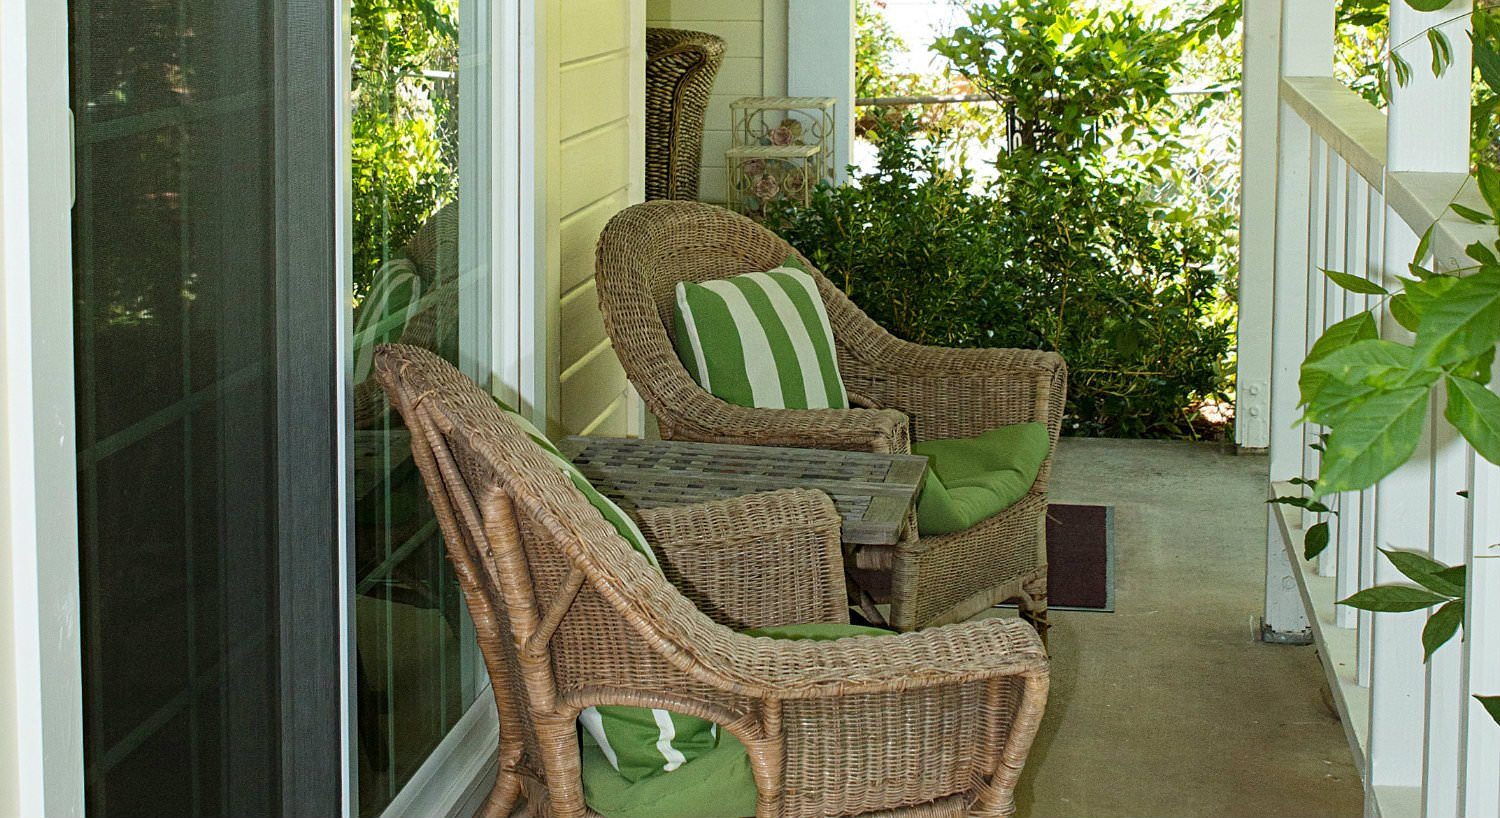 Covered patio with white railing, two wicker chairs with green cushions and green and white striped pillows